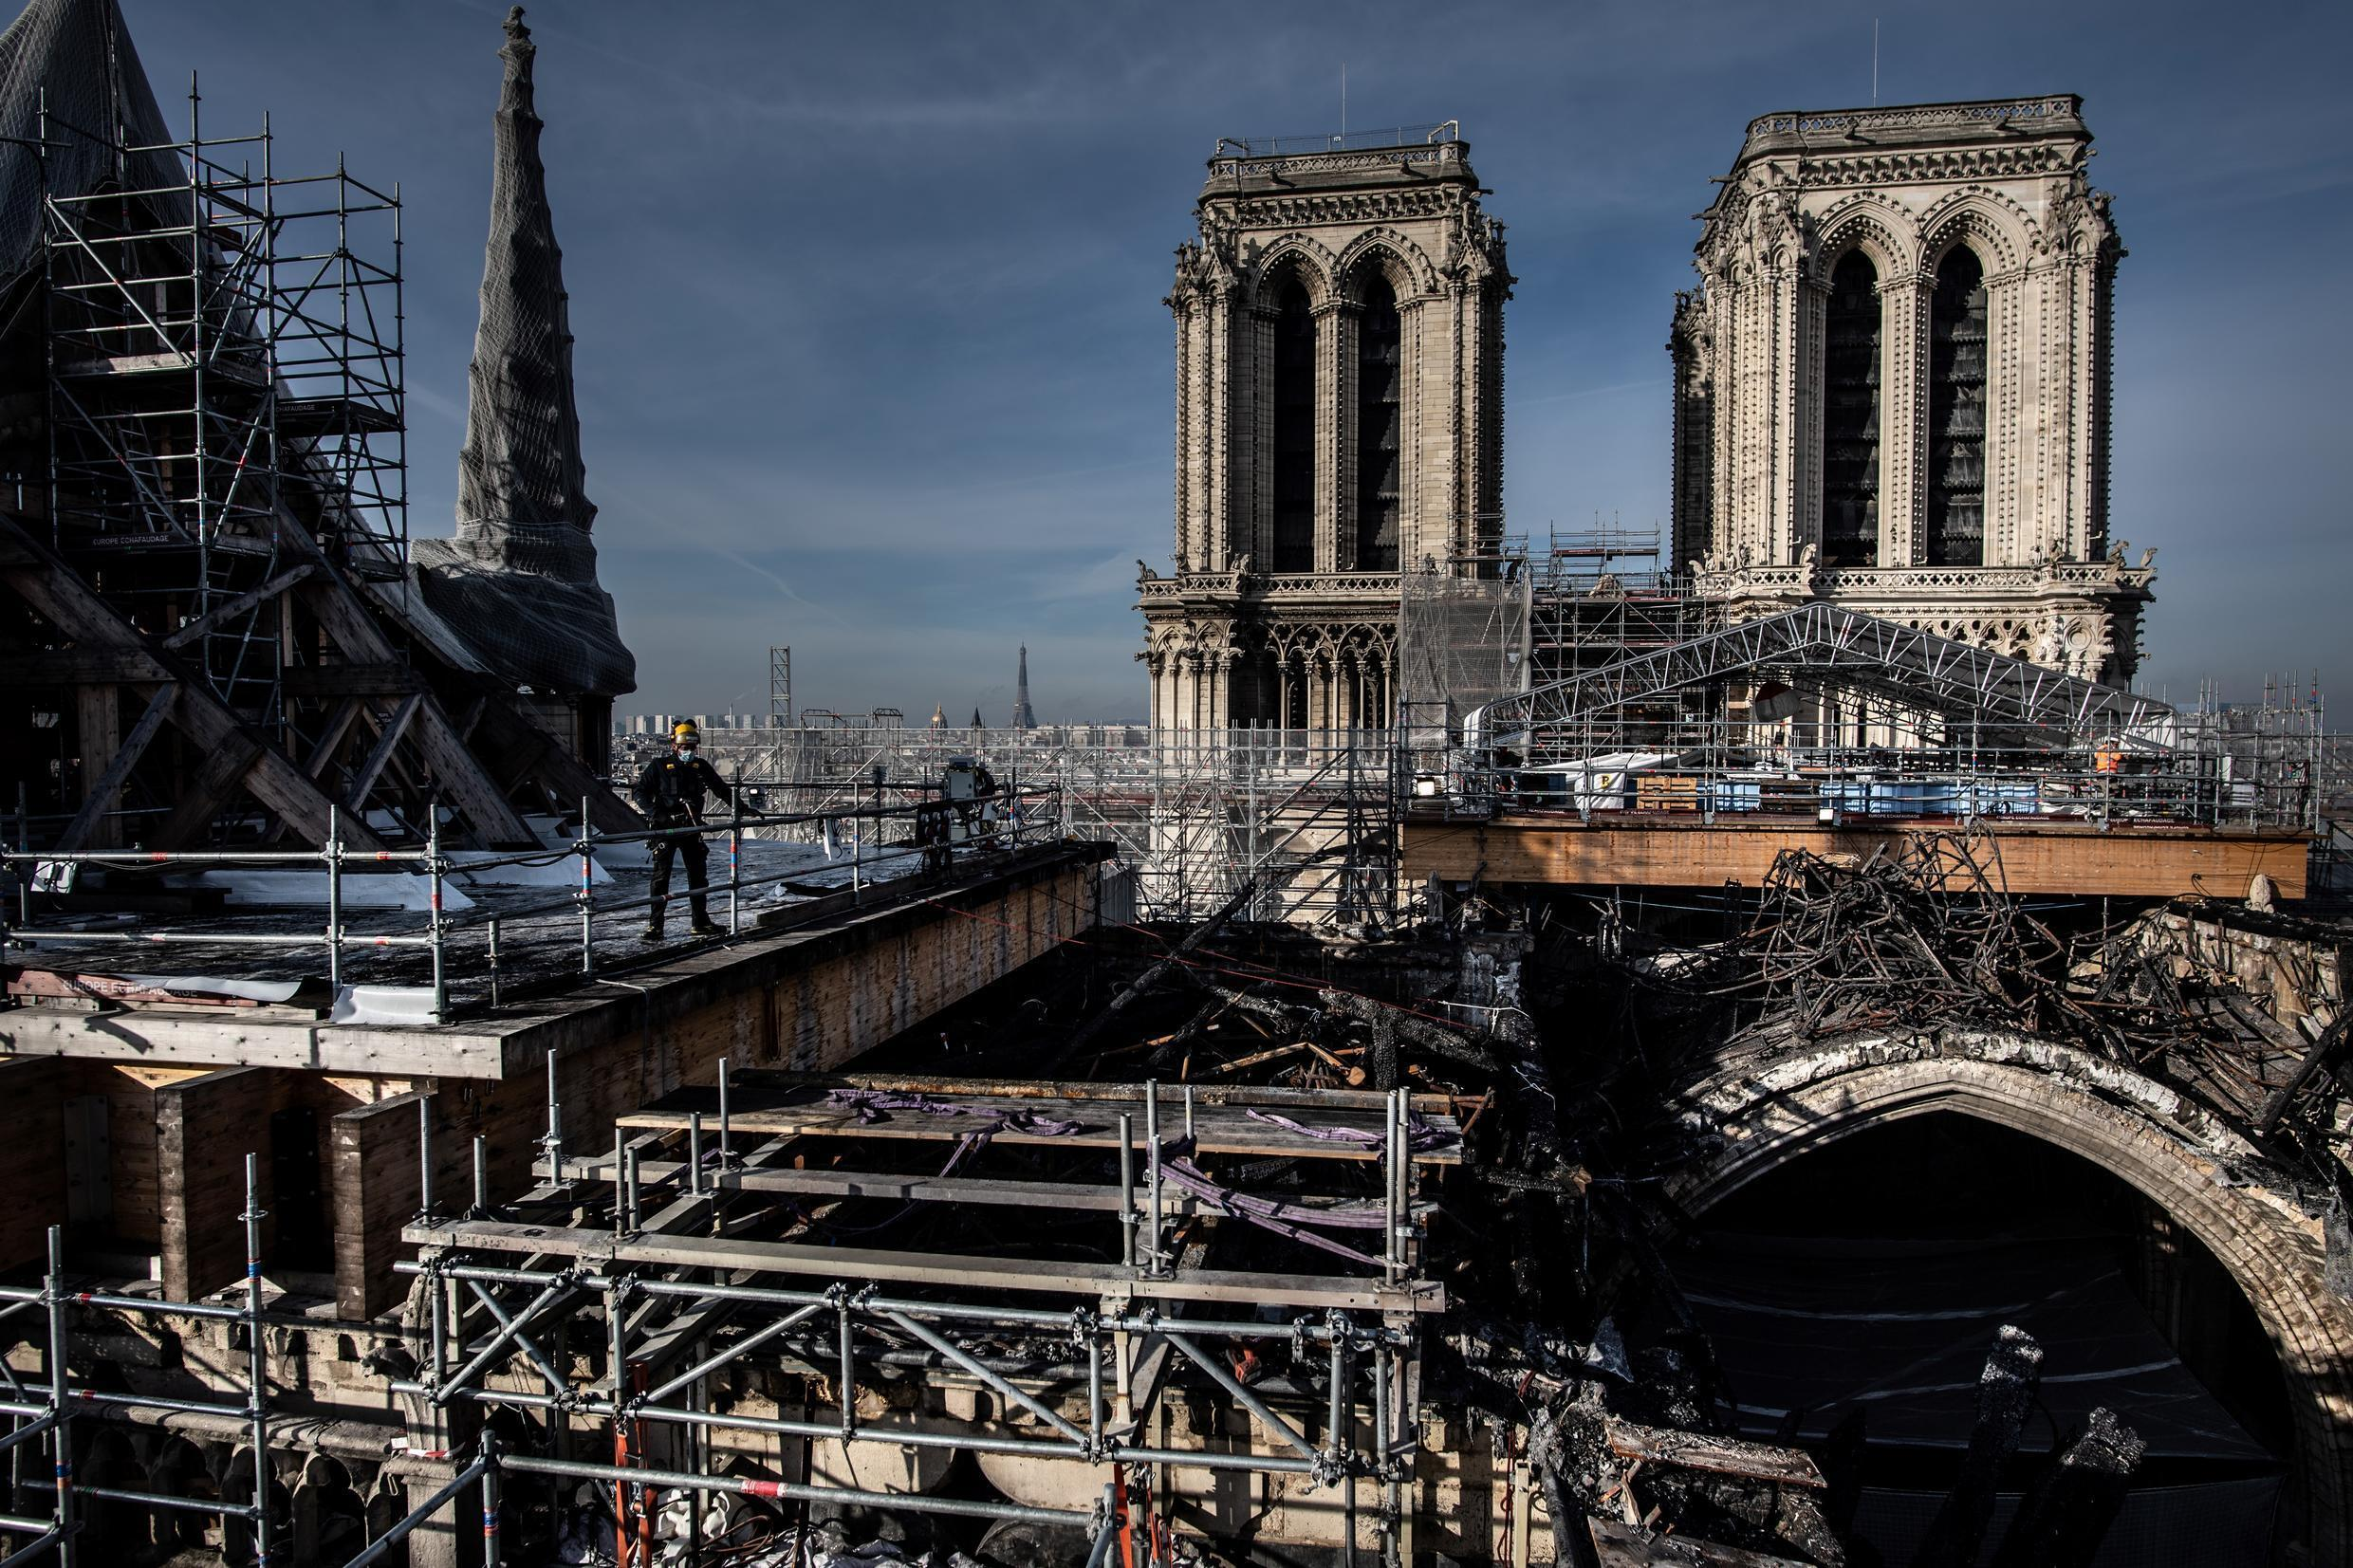 The first task for workers on Notre-Dame cathedral has been removing hundreds of tonnes of scaffolding that were damaged in the fire